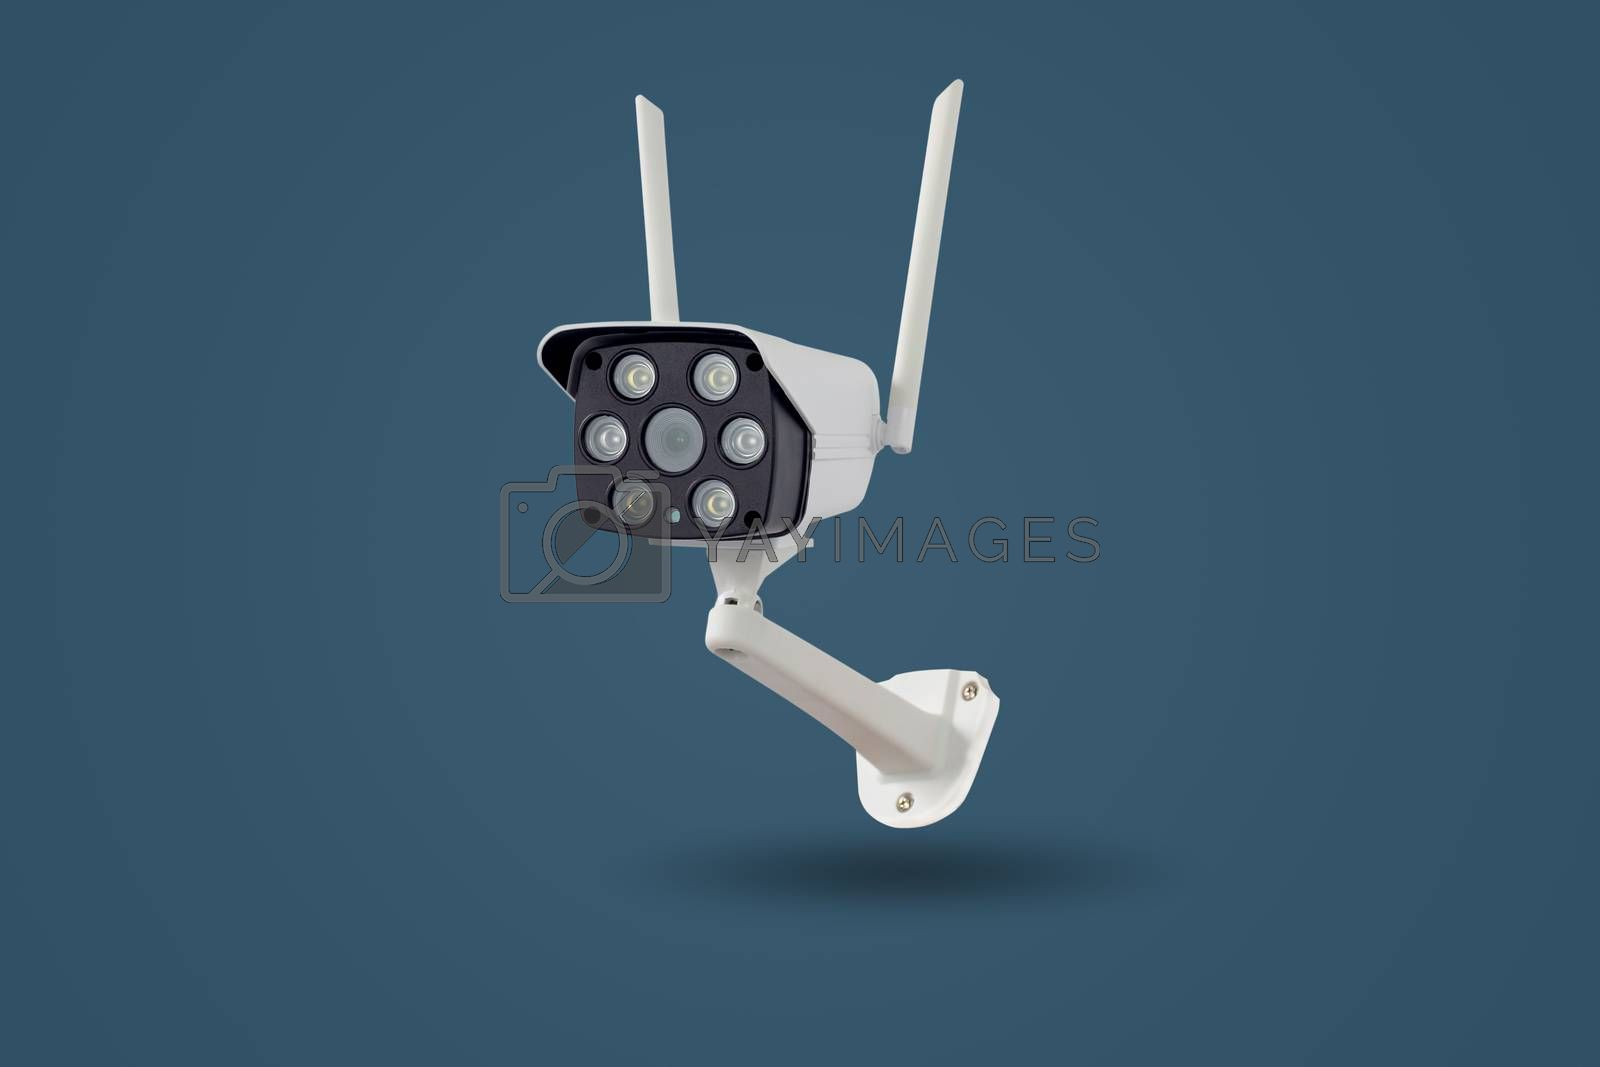 Waterproof outdoors wireless CCTV camera isolated on pastel colors background.